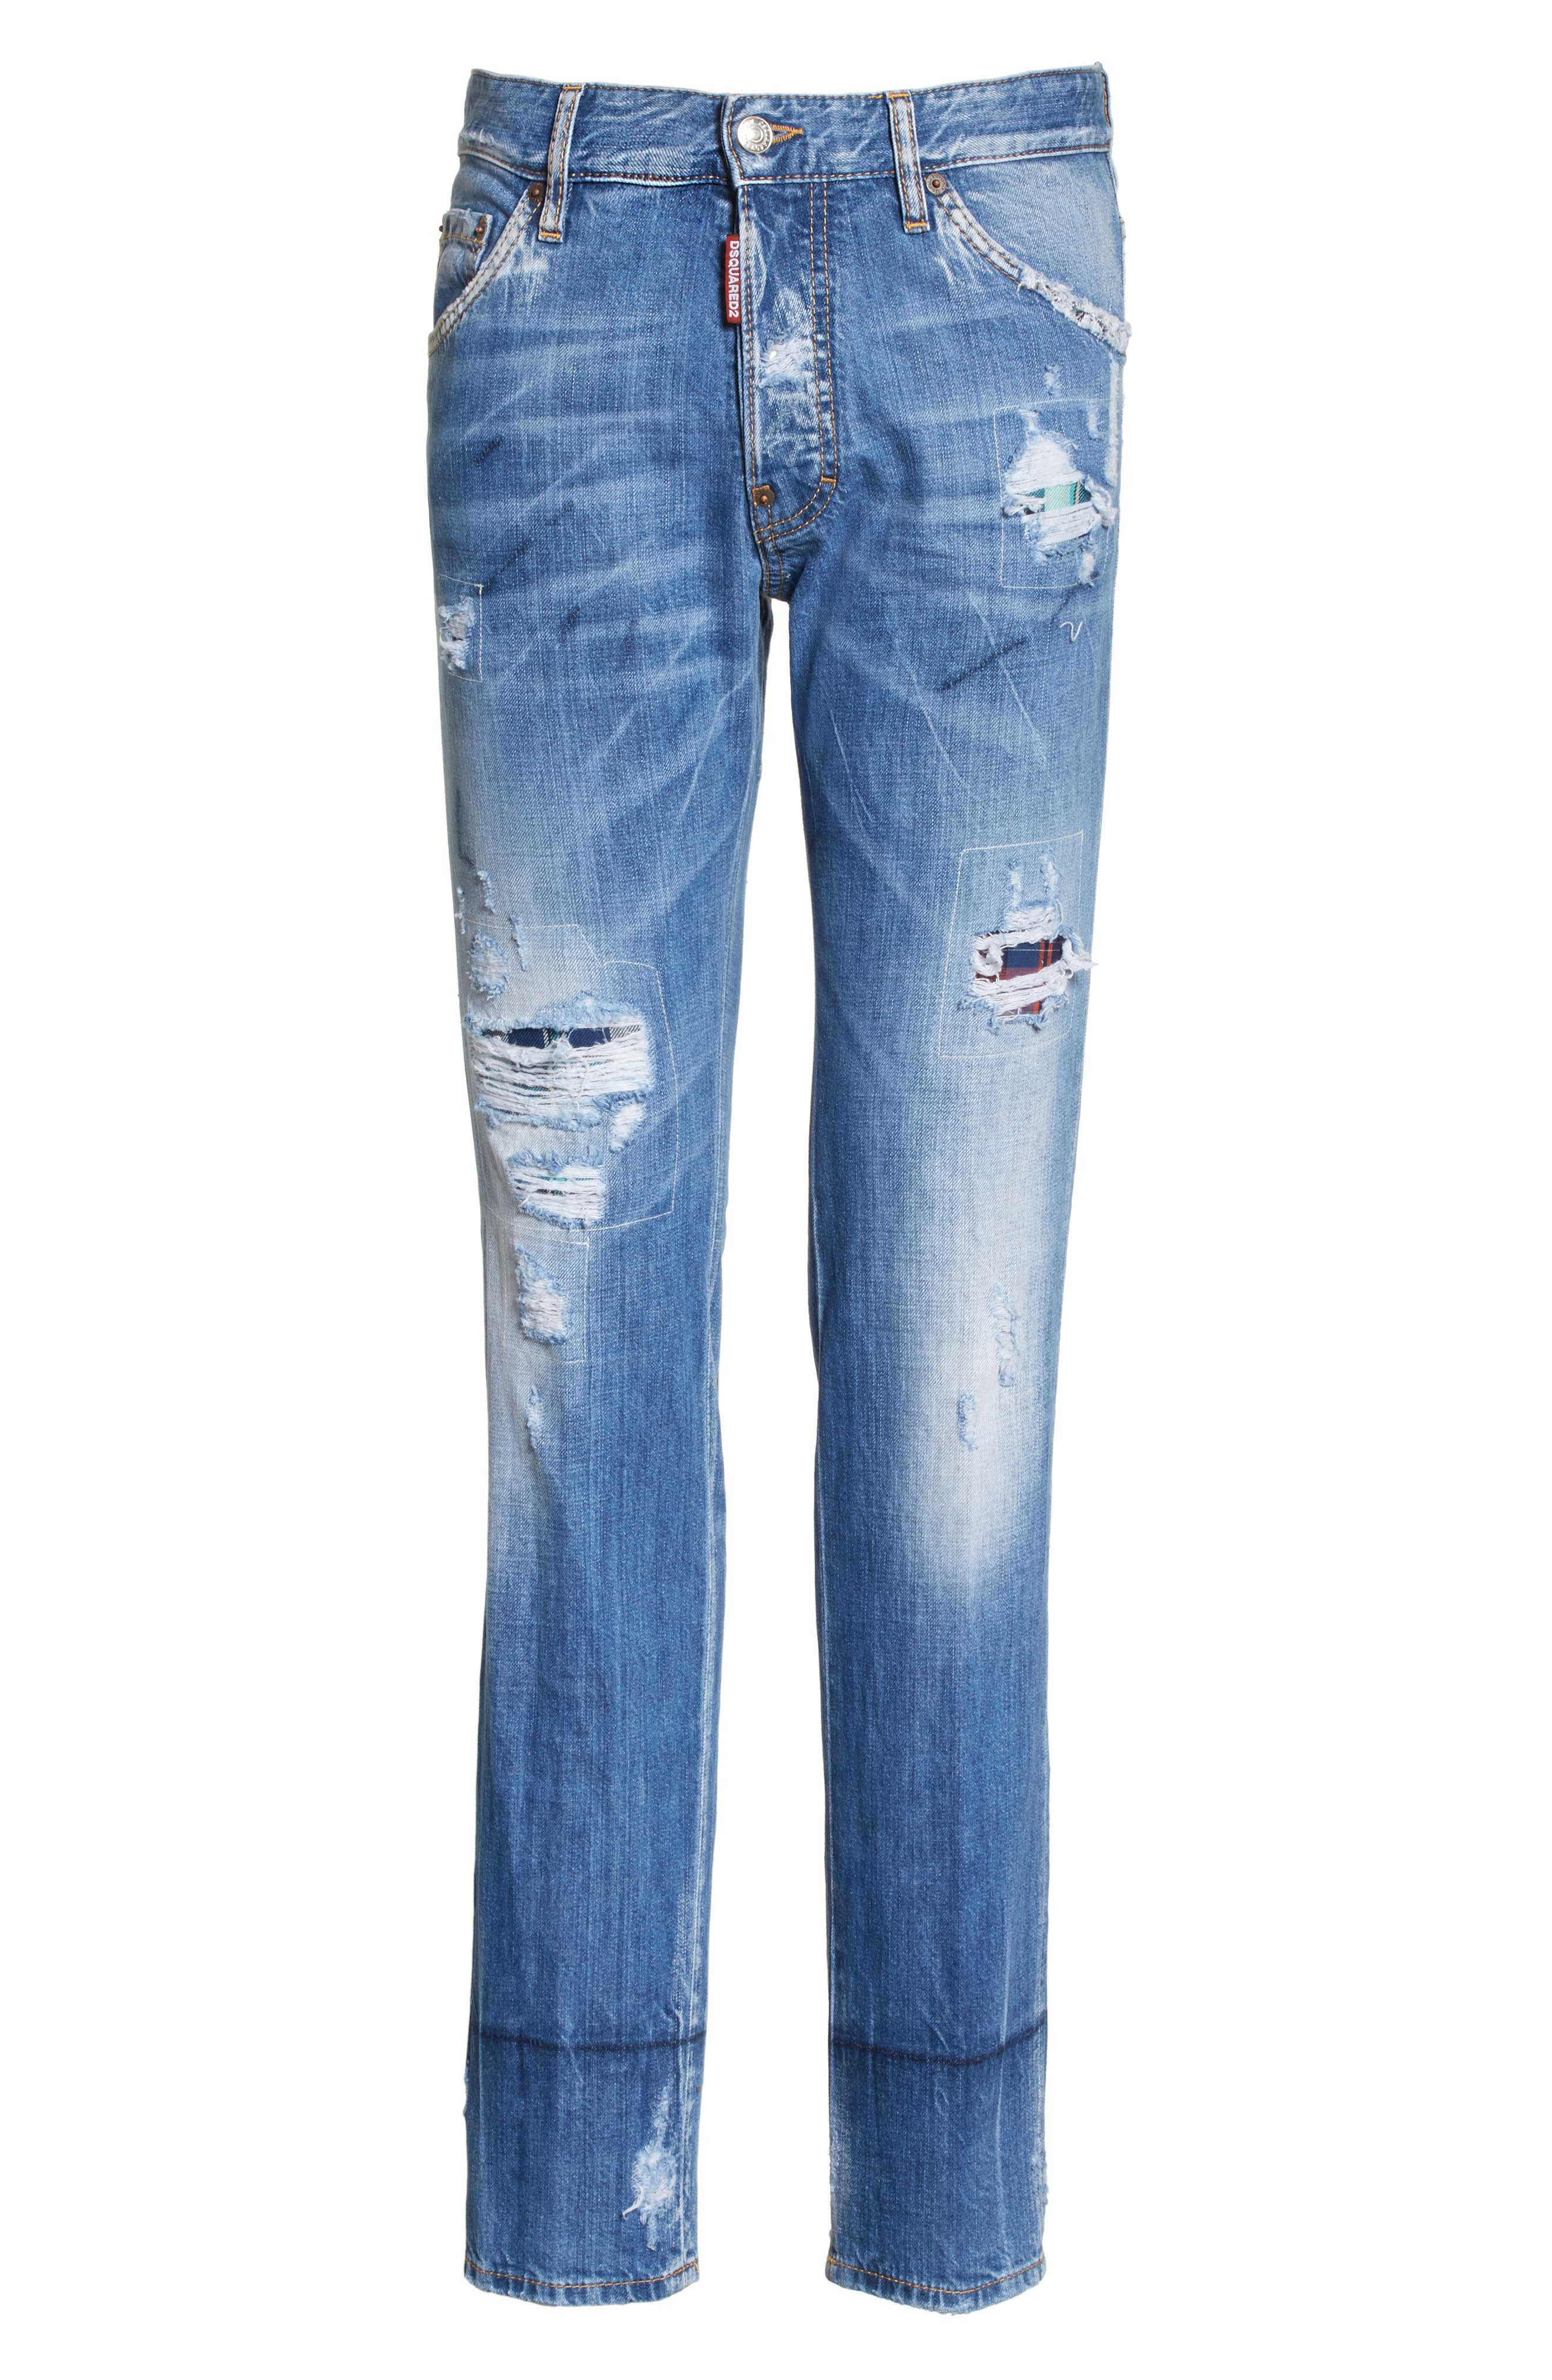 Cool Guy Skinny Fit Jeans,                             Alternate thumbnail 6, color,                             414